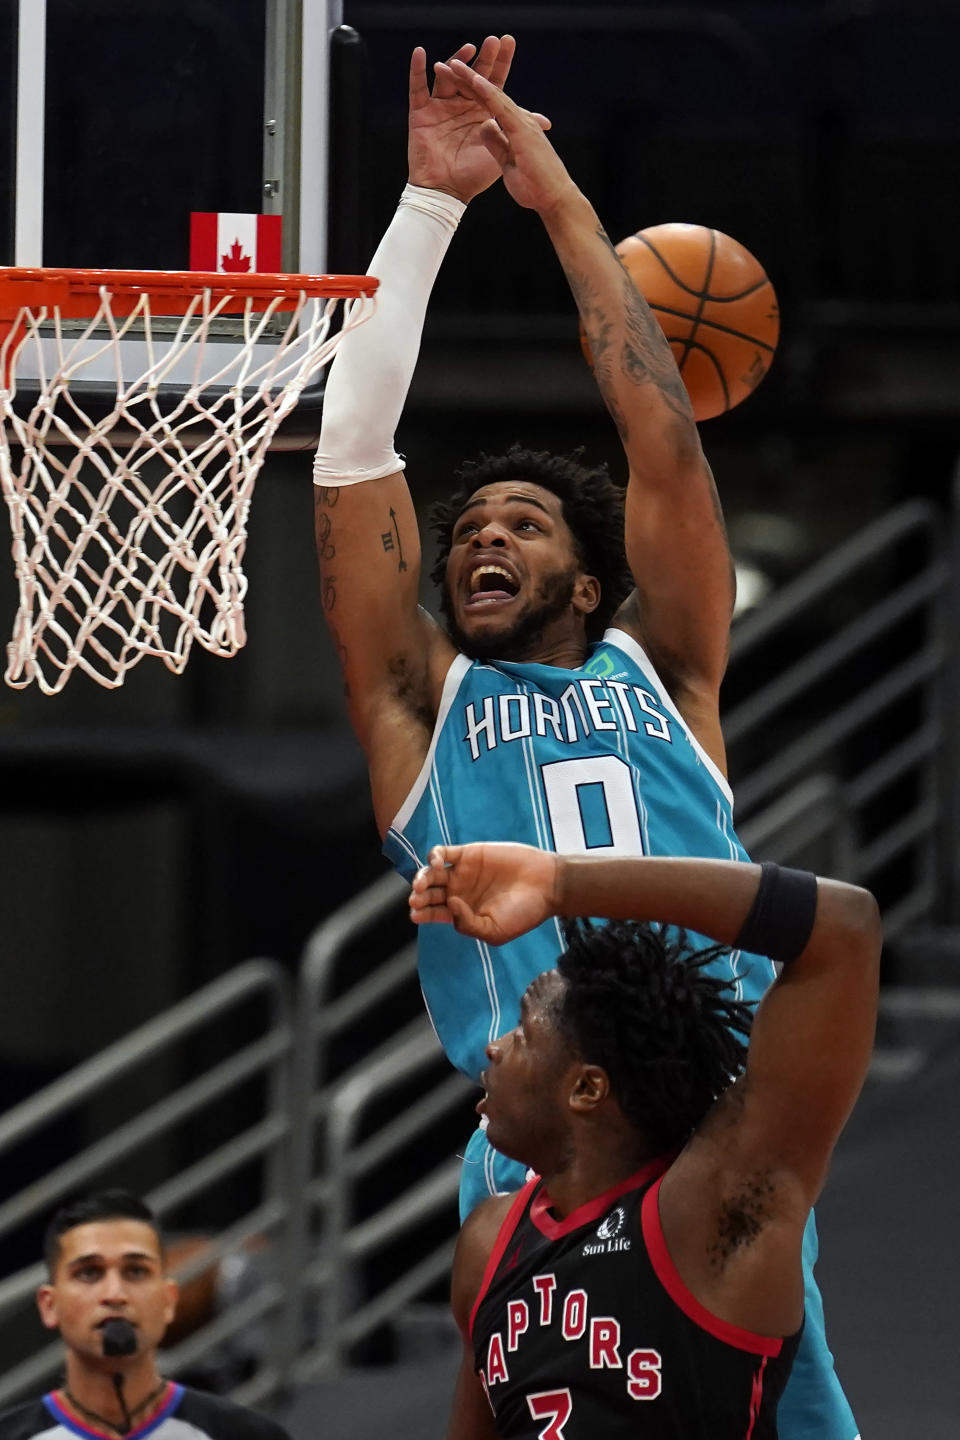 Charlotte Hornets forward Miles Bridges (0) can't handle a pass after getting past Toronto Raptors forward OG Anunoby (3) during the second half of an NBA basketball game Saturday, Jan. 16, 2021, in Tampa, Fla. (AP Photo/Chris O'Meara)